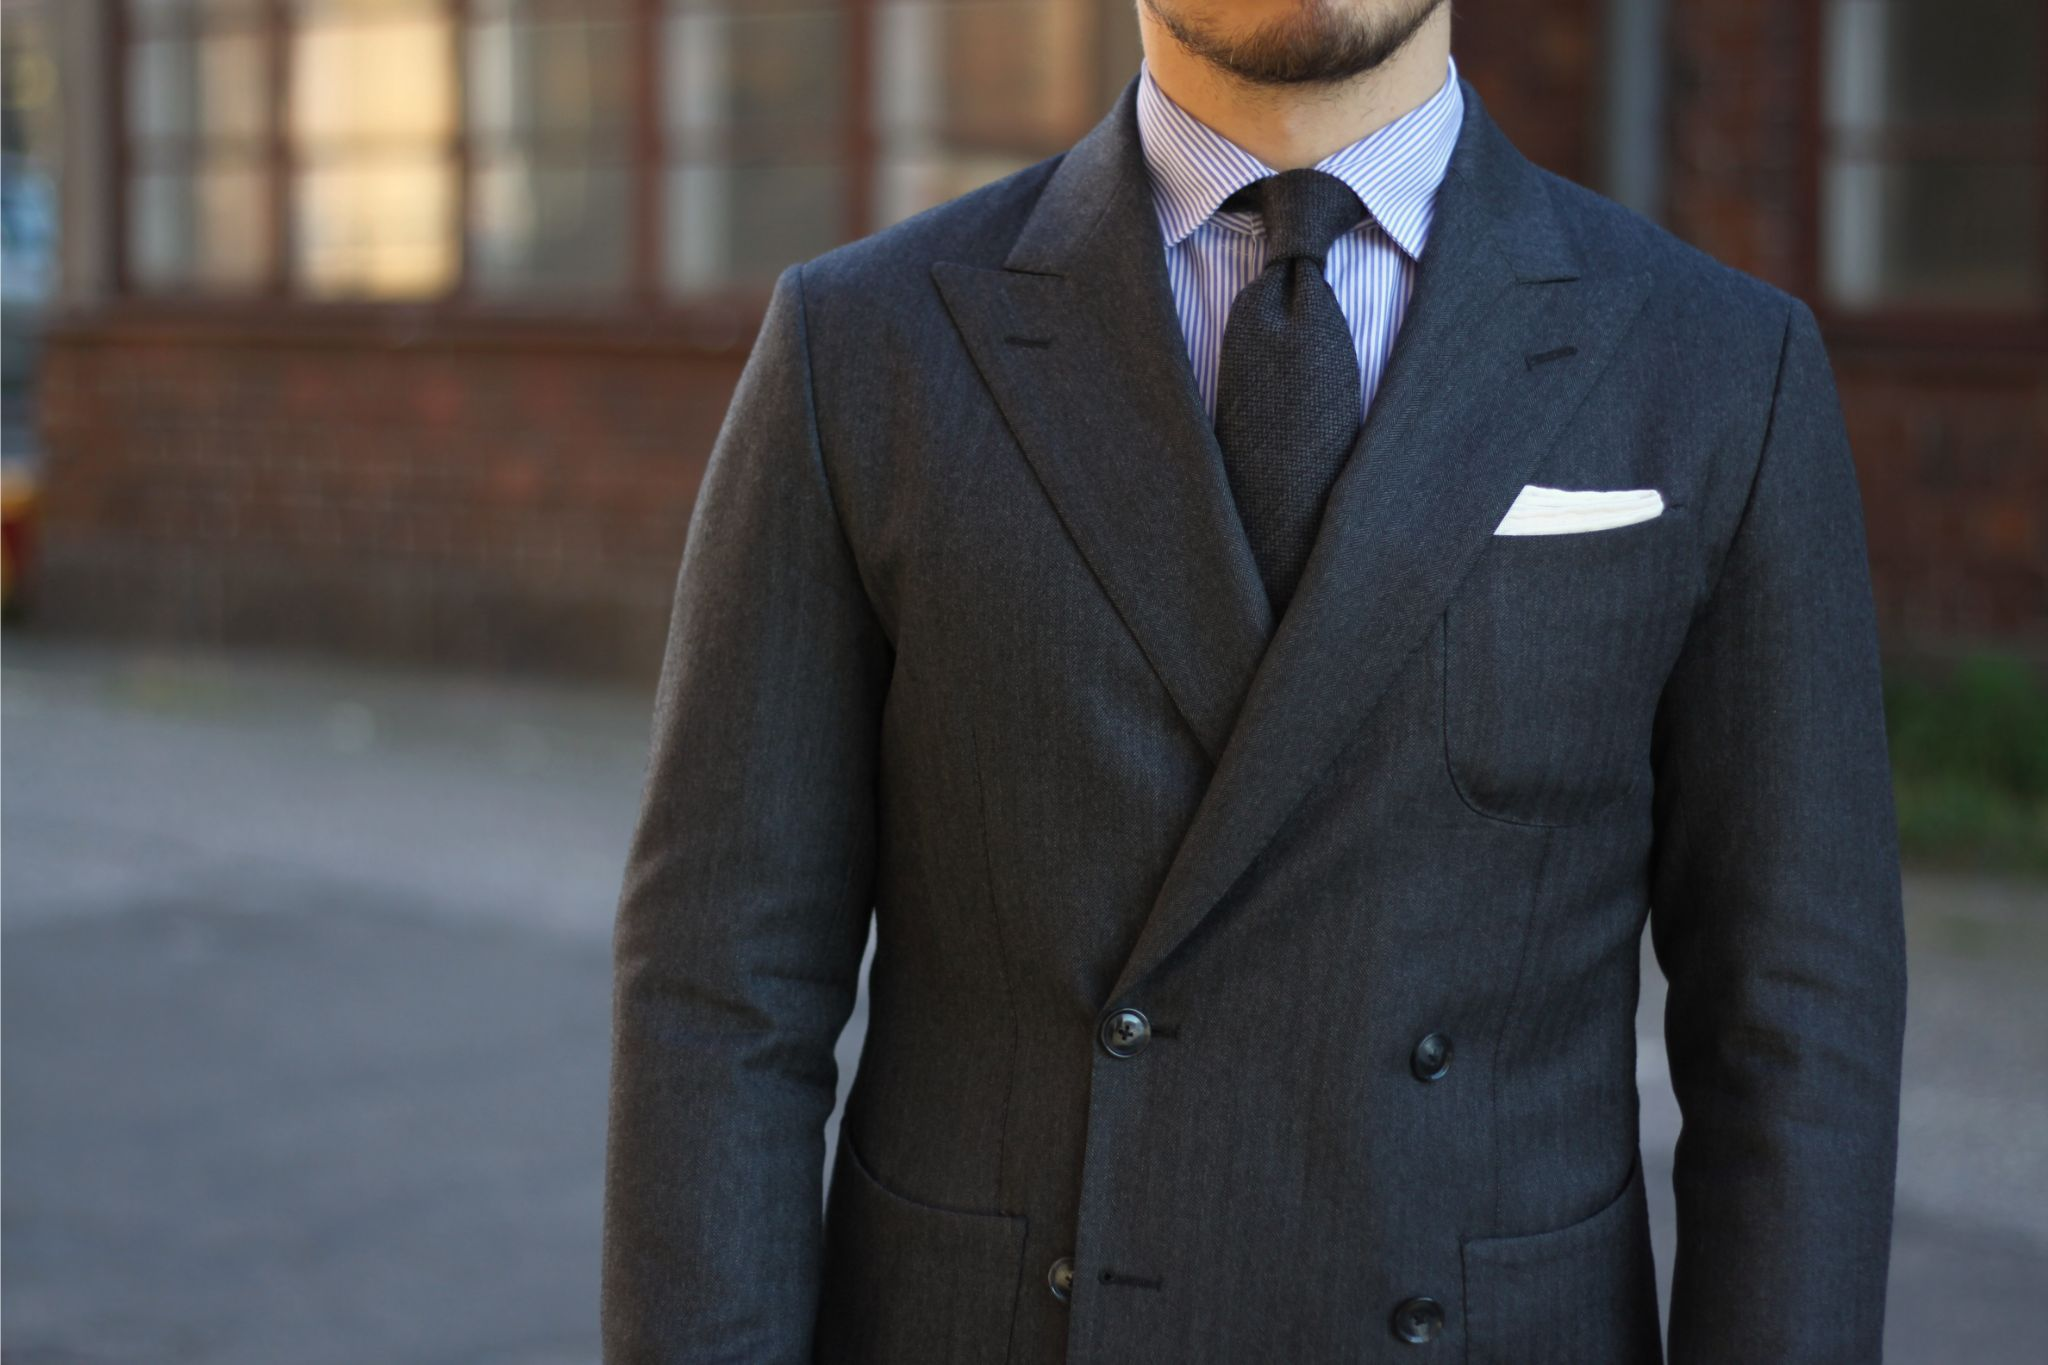 Gray double-breasted suit with a gray tie